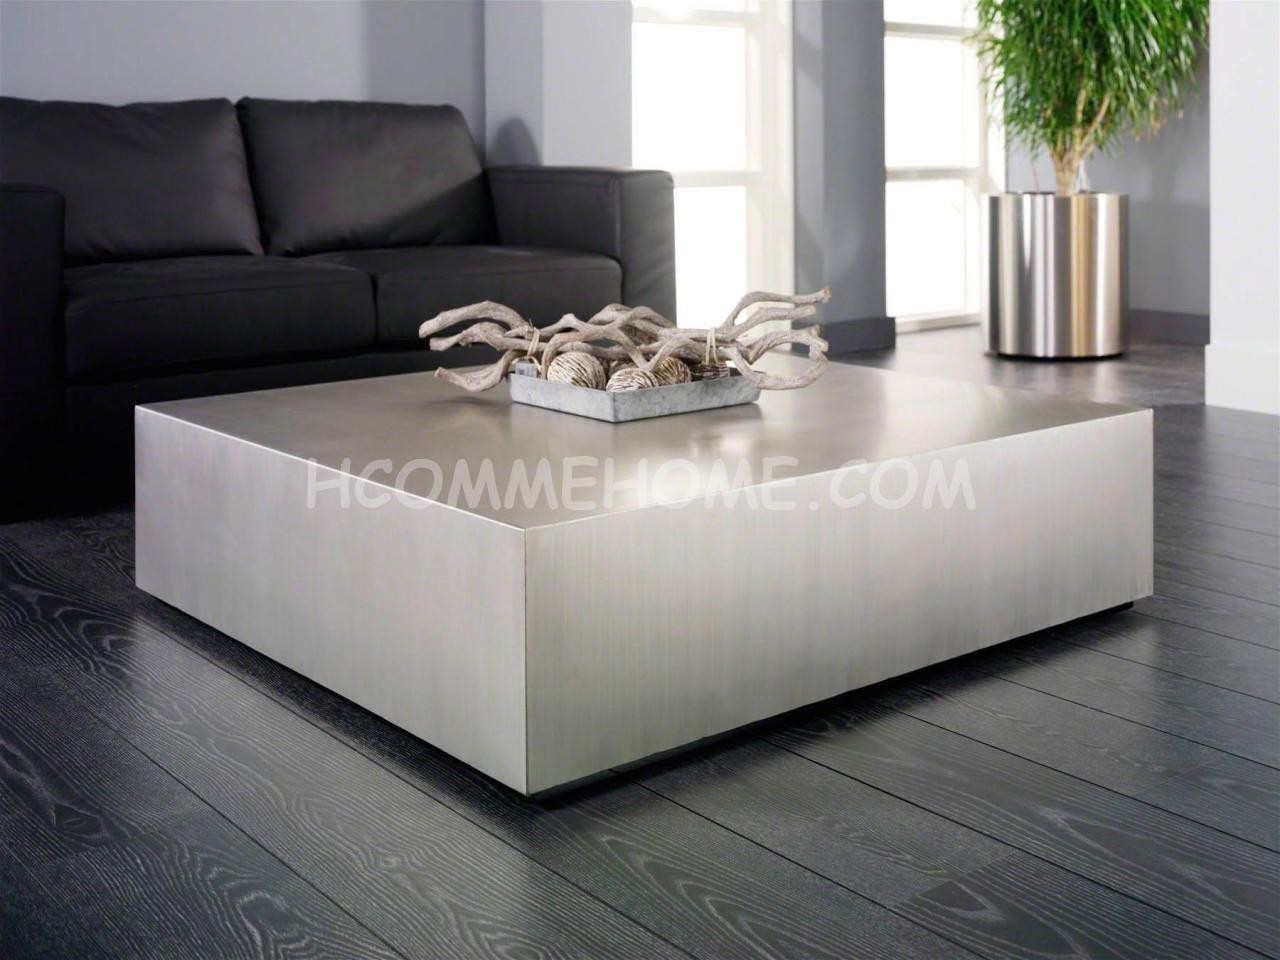 Table basse design inox brosse for Table basse design